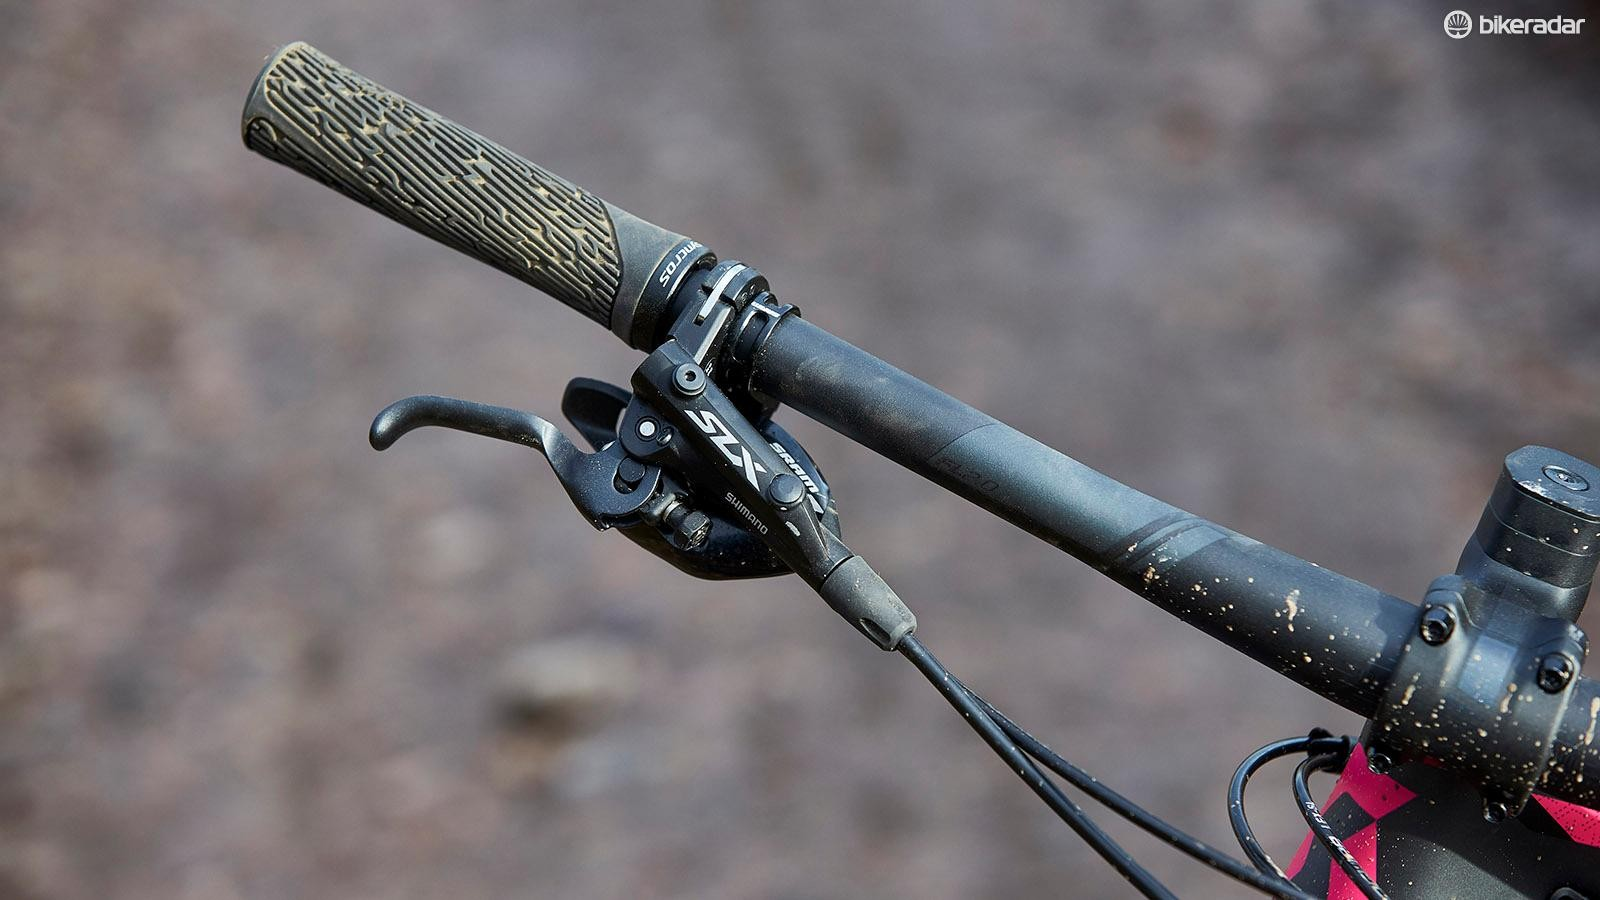 Shimano SLX brakes provide good stopping power and smooth braking action